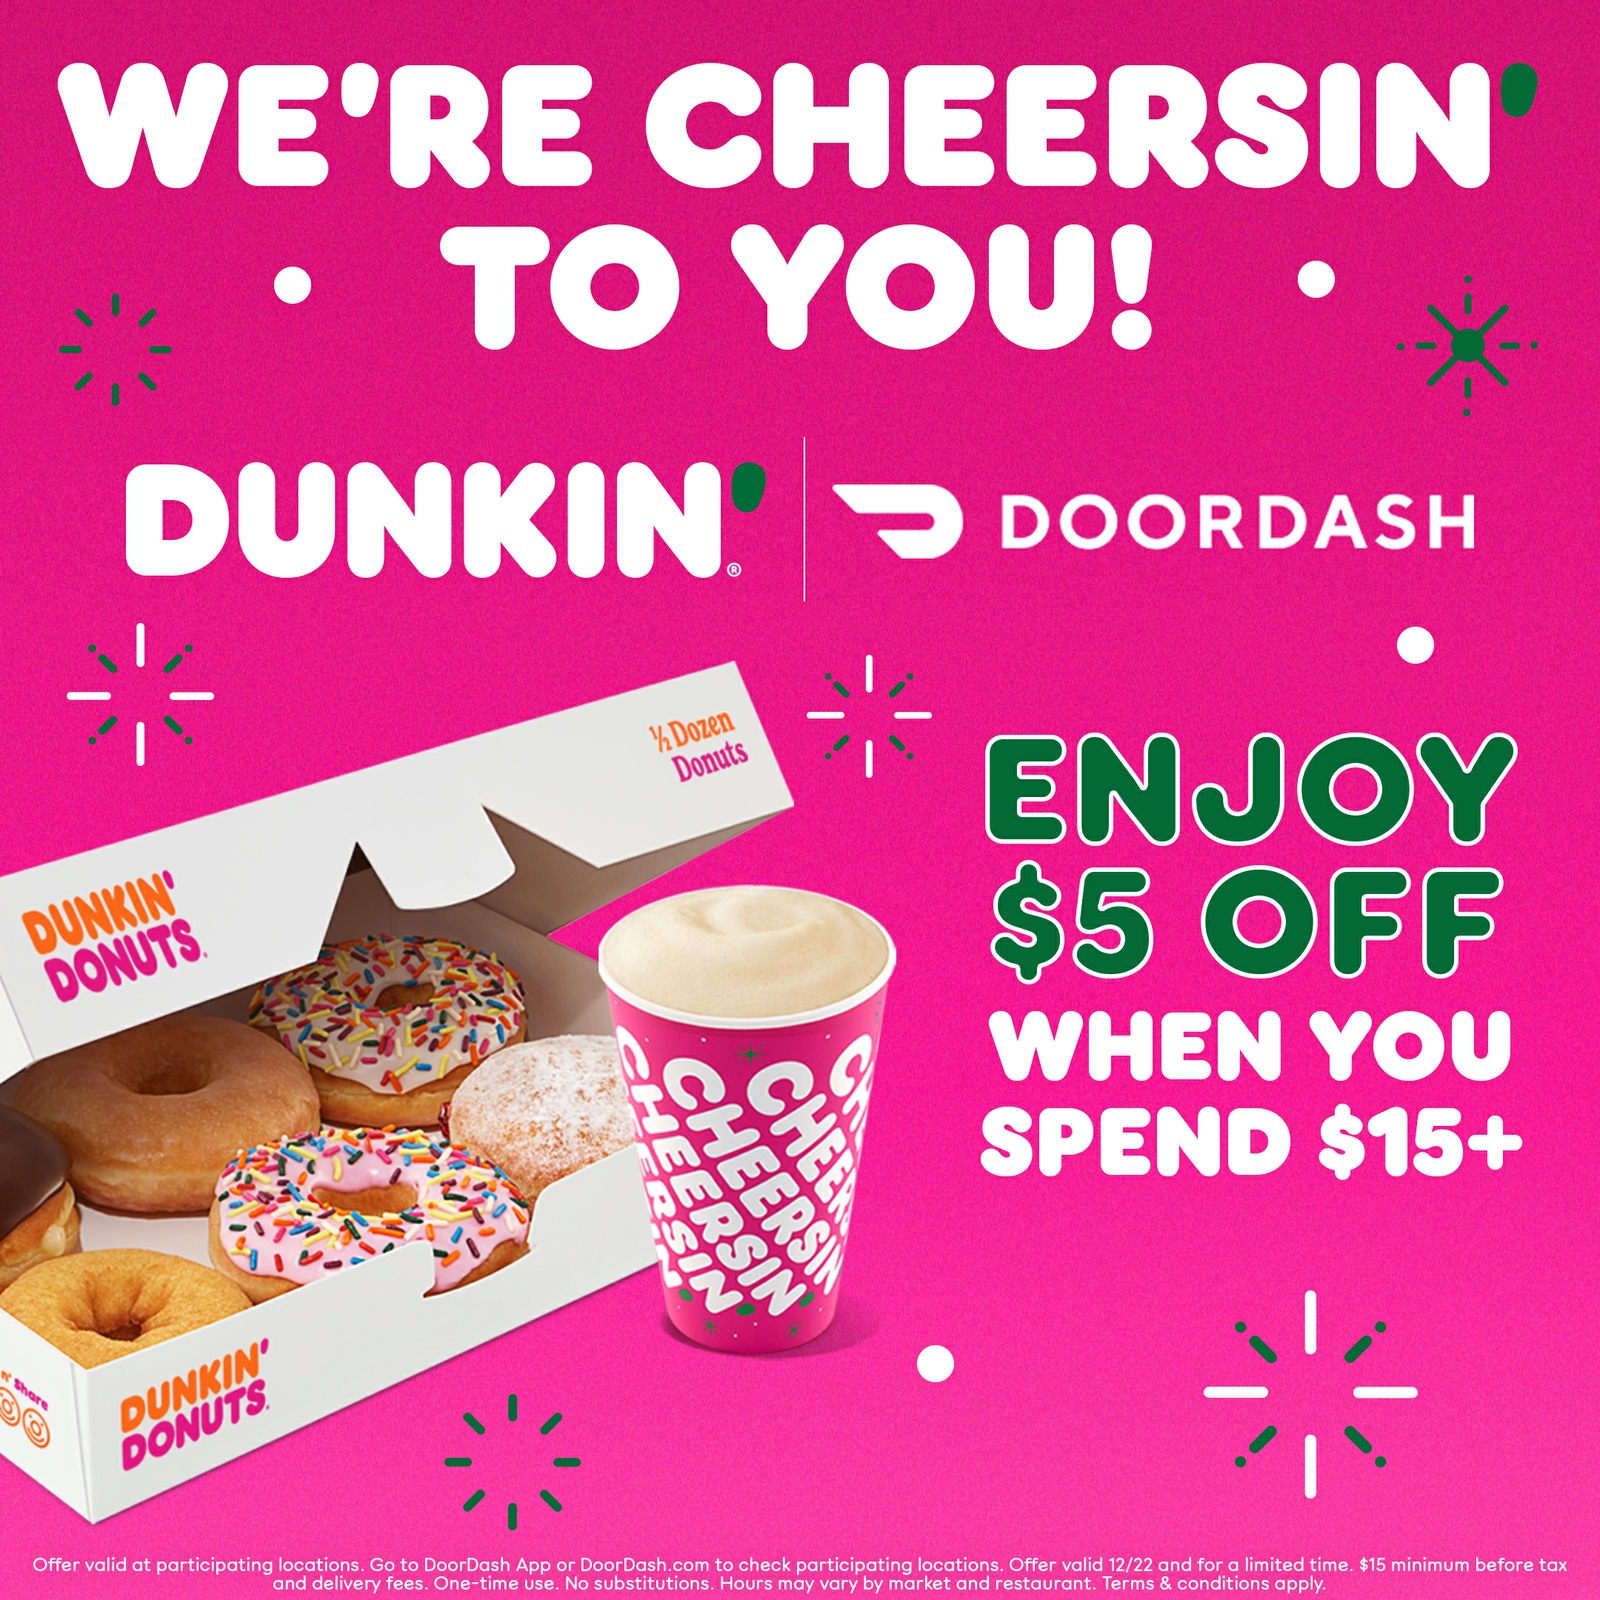 Dunkin' Makes the Holidays Merrier with a Sweet DoorDash Deal